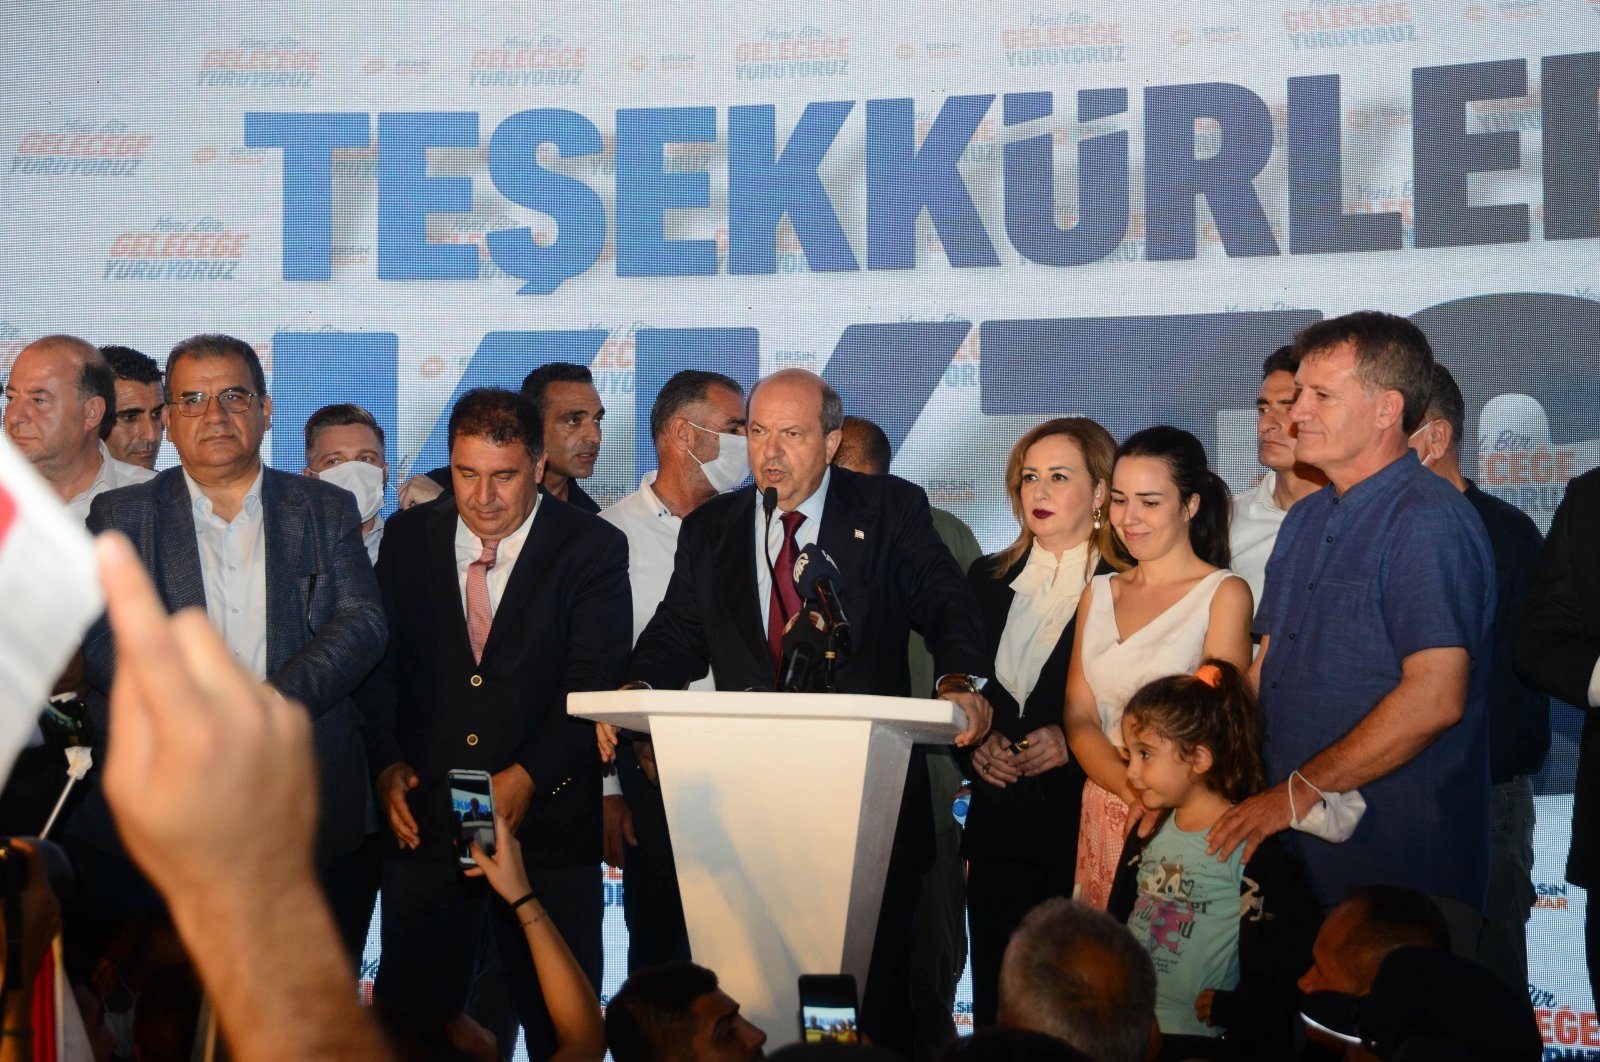 President-elect Ersin Tatar speaks after winning the second round of presidential elections in the Turkish Republic of Northern Cyprus (TRNC) in Lefkoşa on Oct. 18, 2020. (AA Photo)